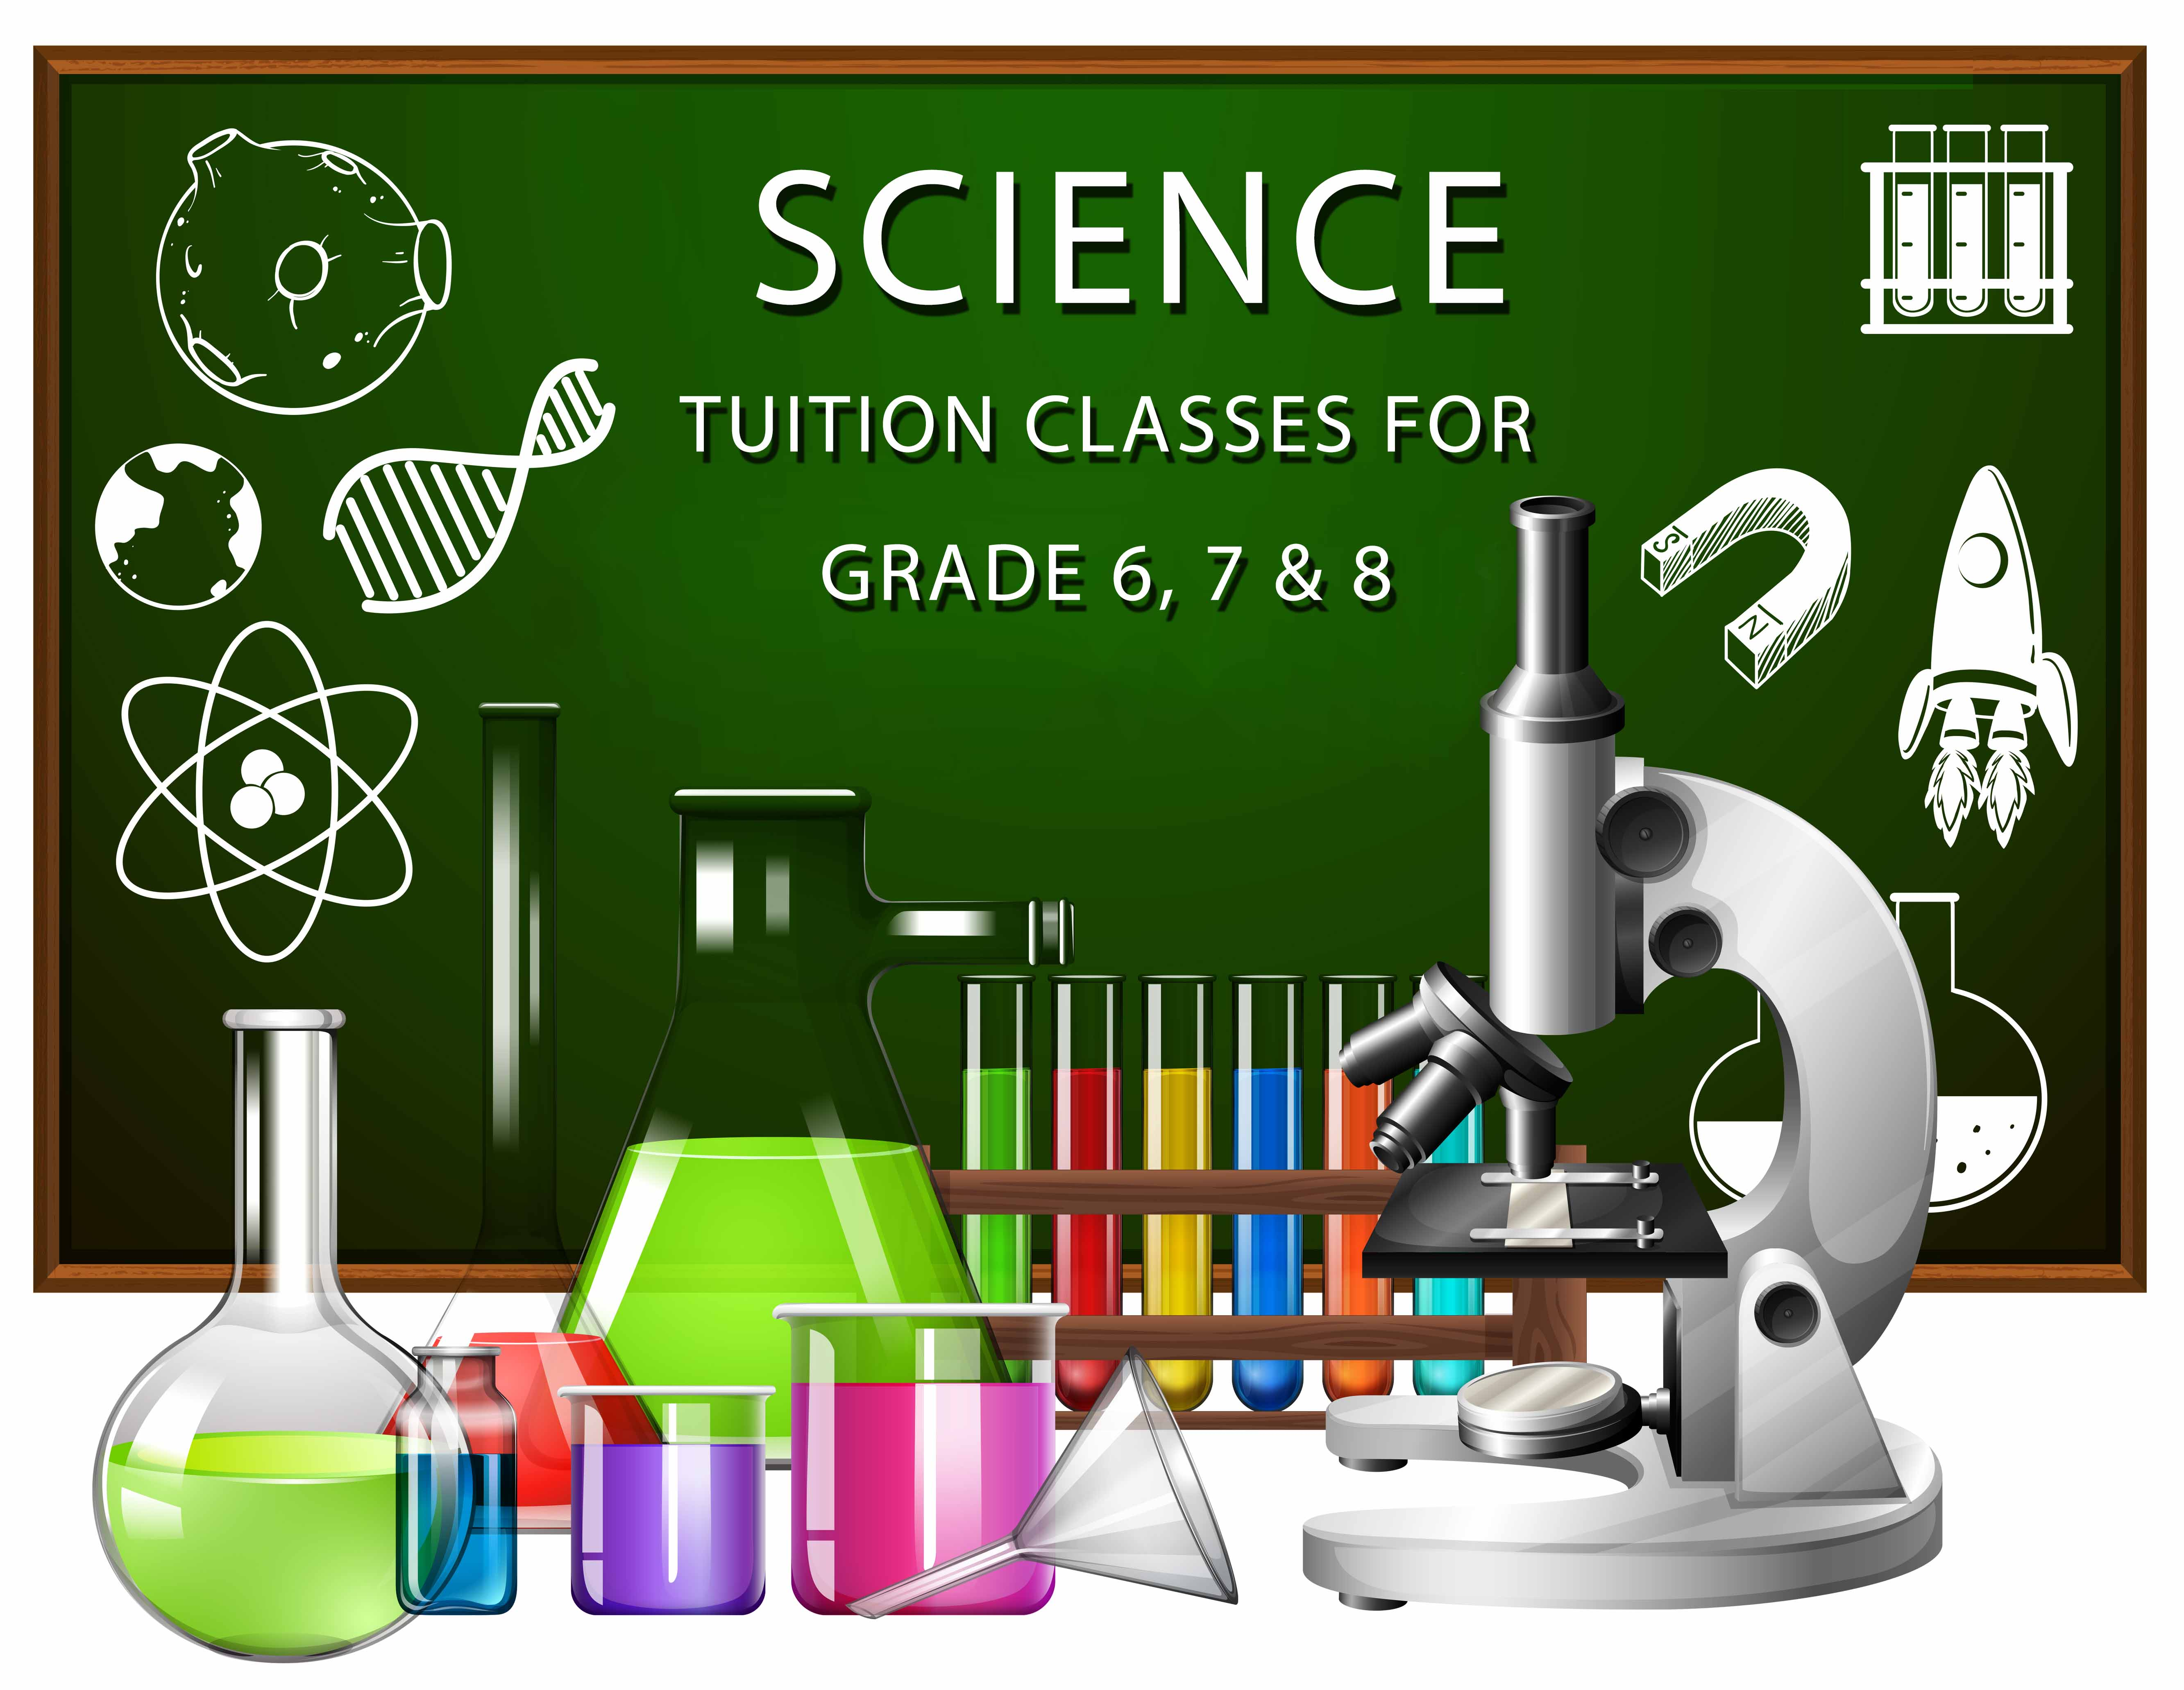 SCIENCE TUITION CLASSES FOR GRADE 6, 7 & 8 STUDENT